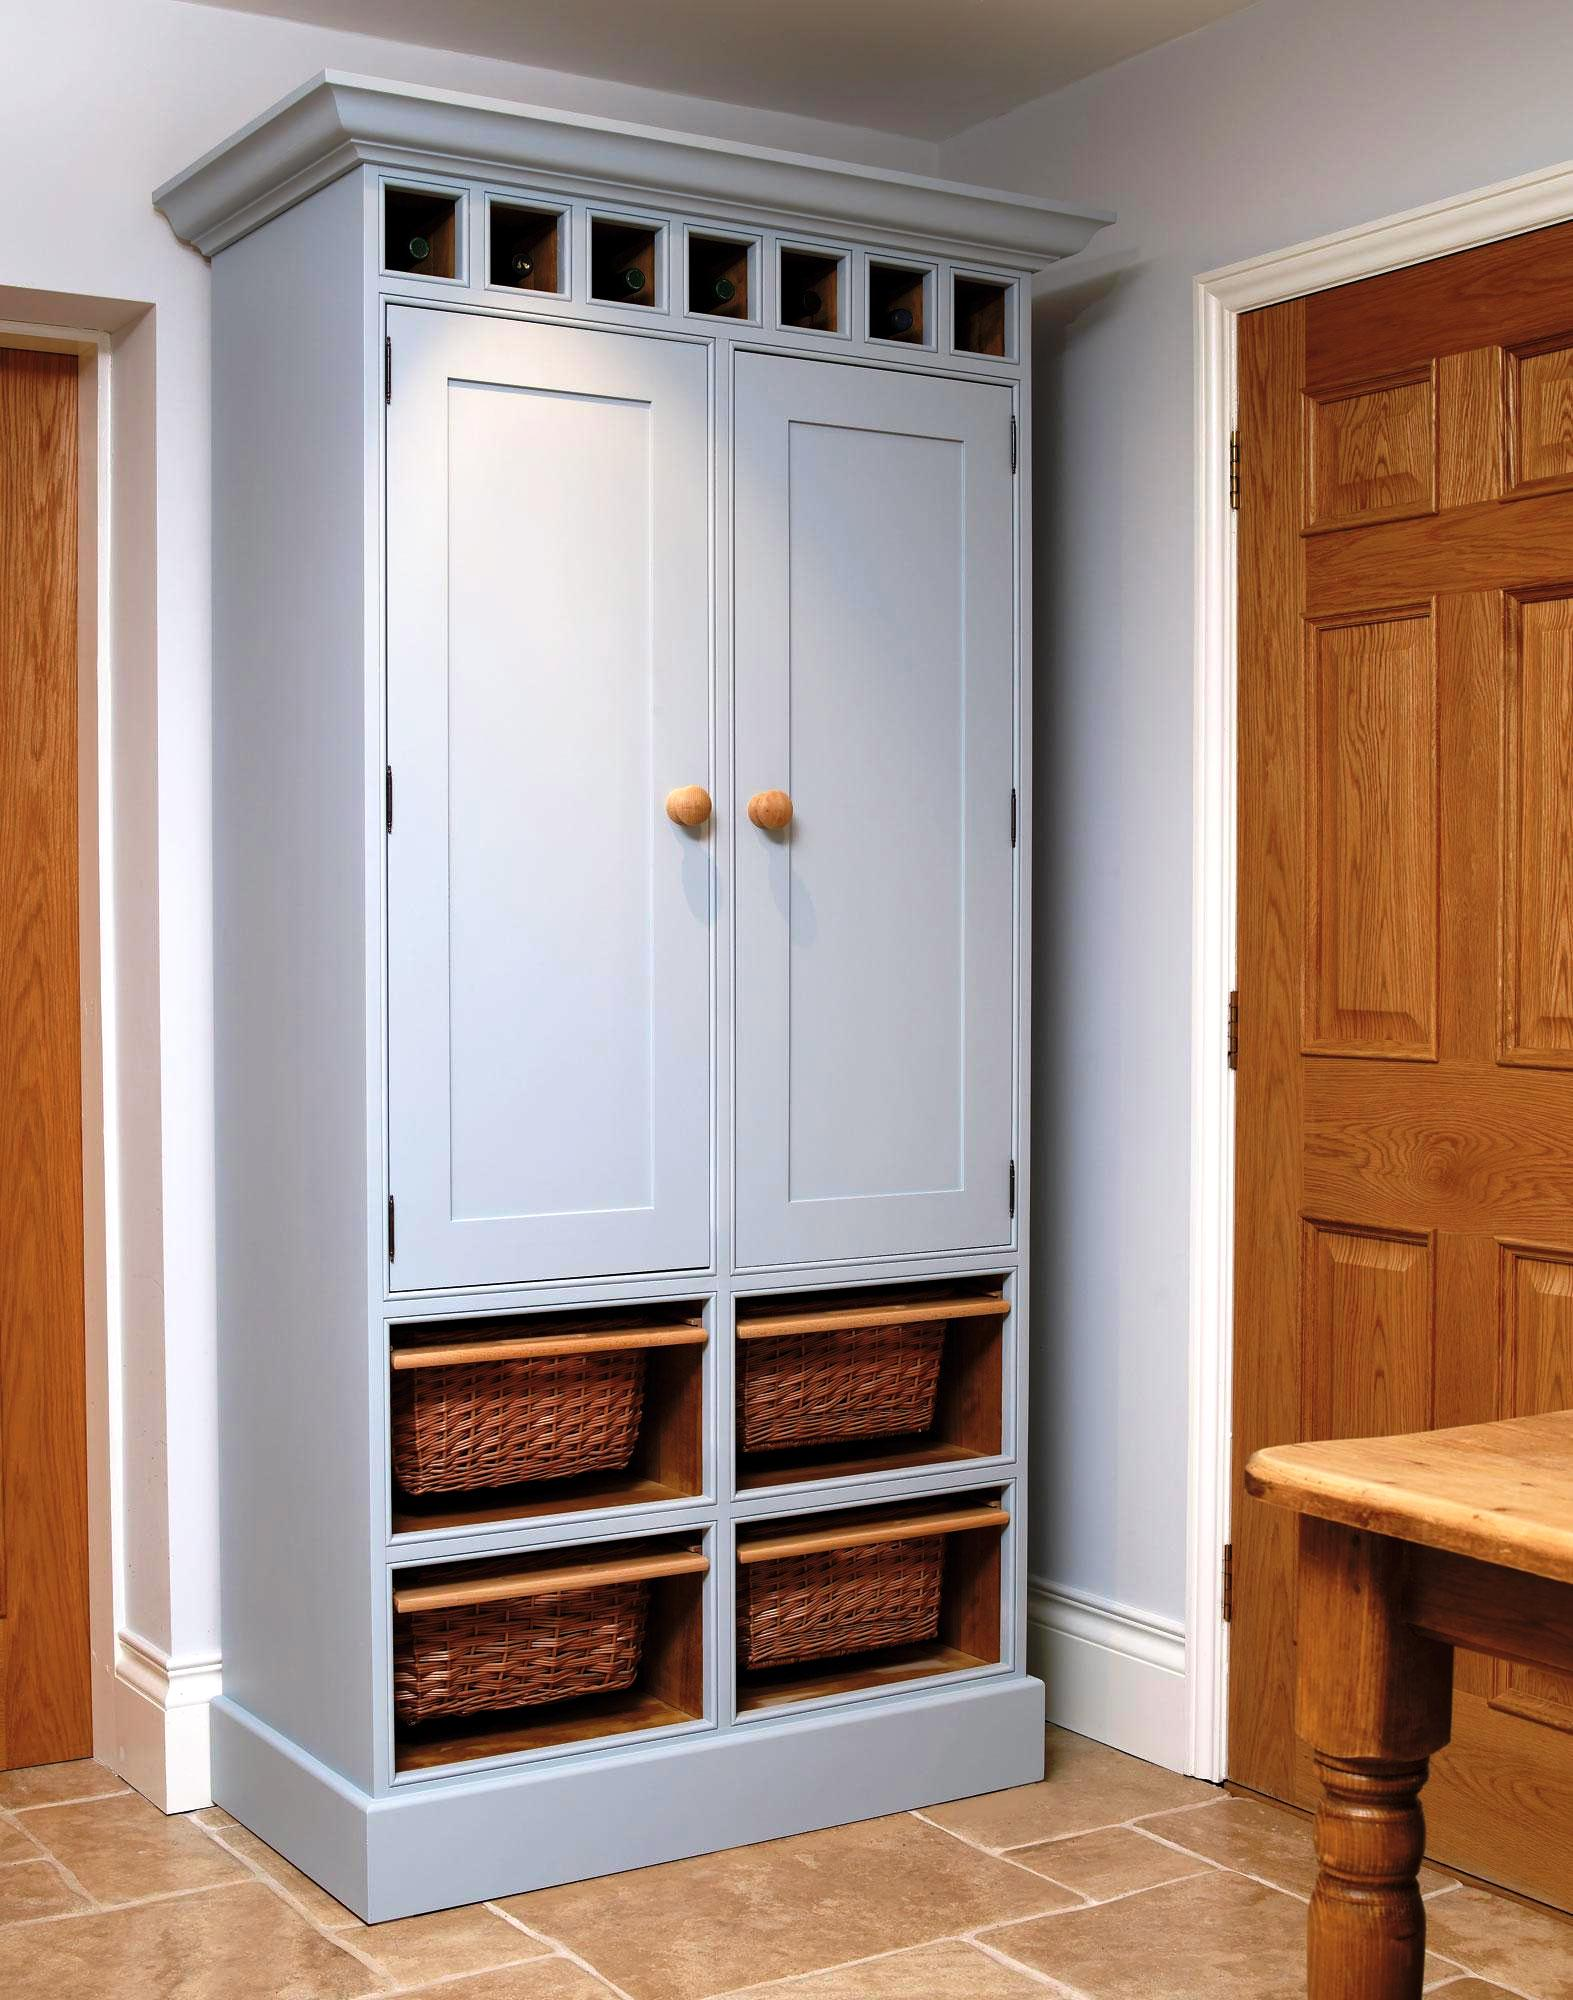 Appealing Freestanding Pantry Cabinet Schmidt Gallery Design